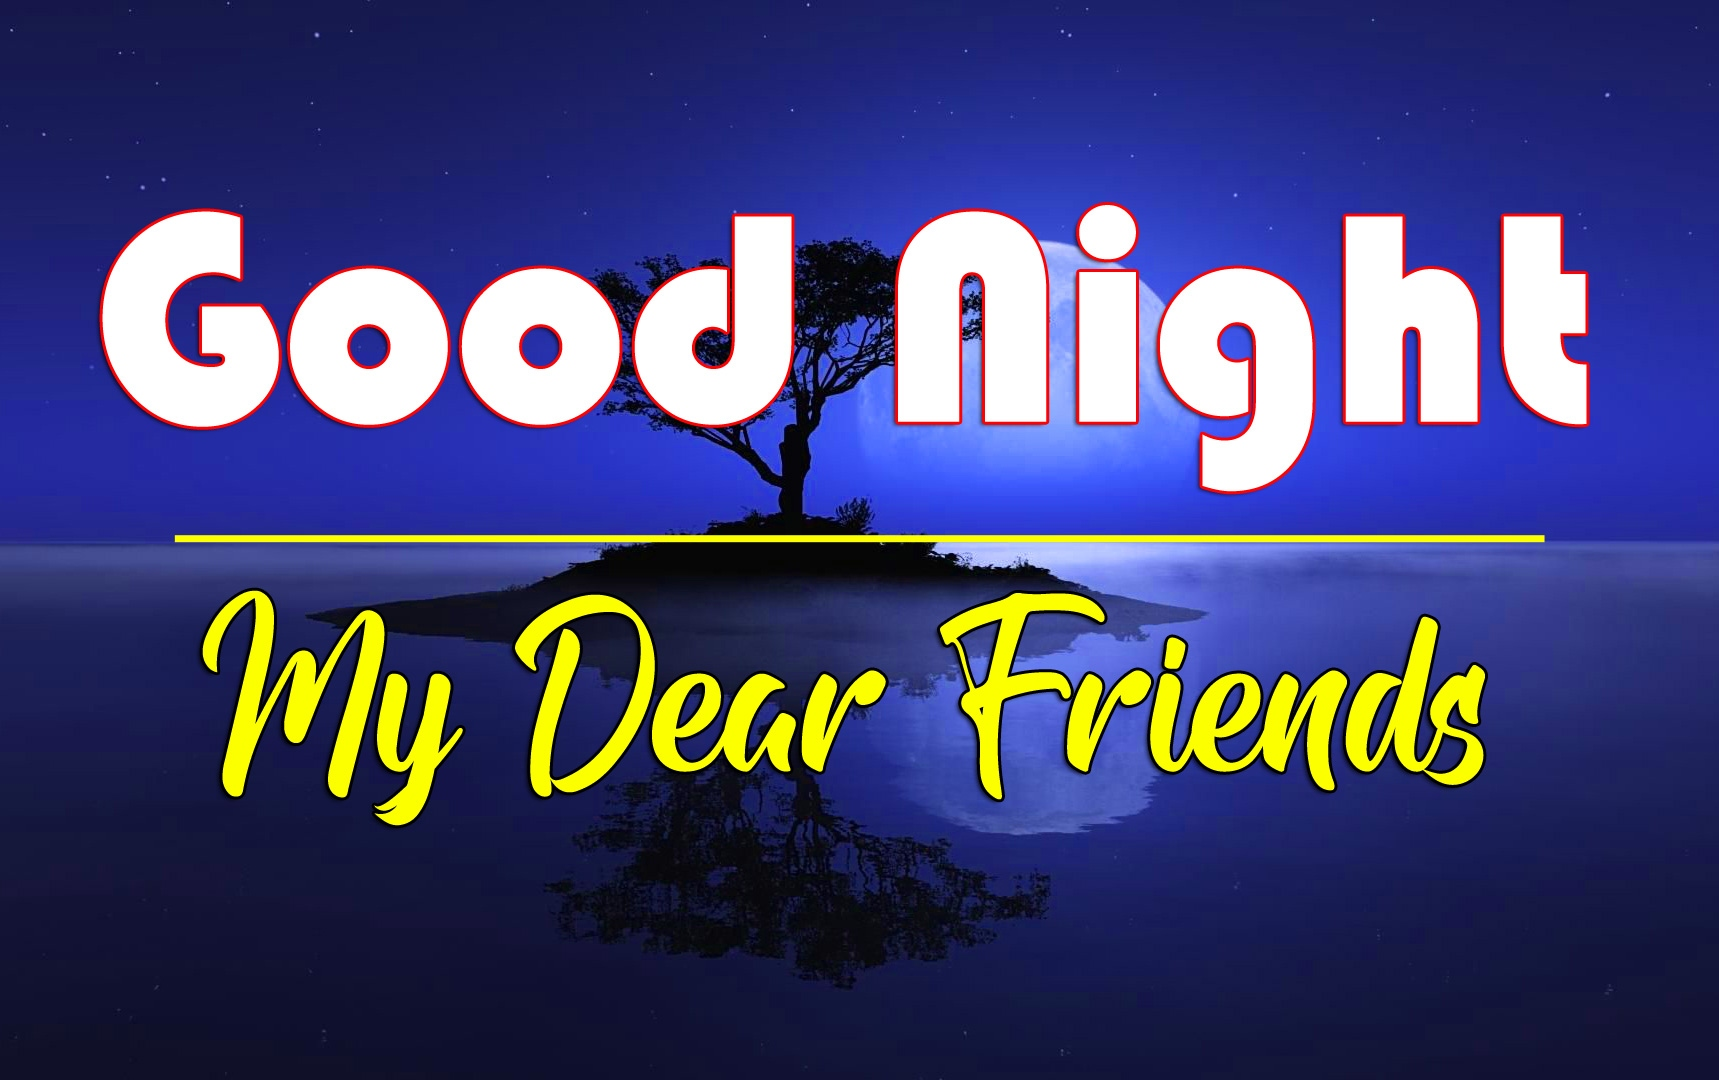 Best Quality Free 4k Good Night Images pics Download